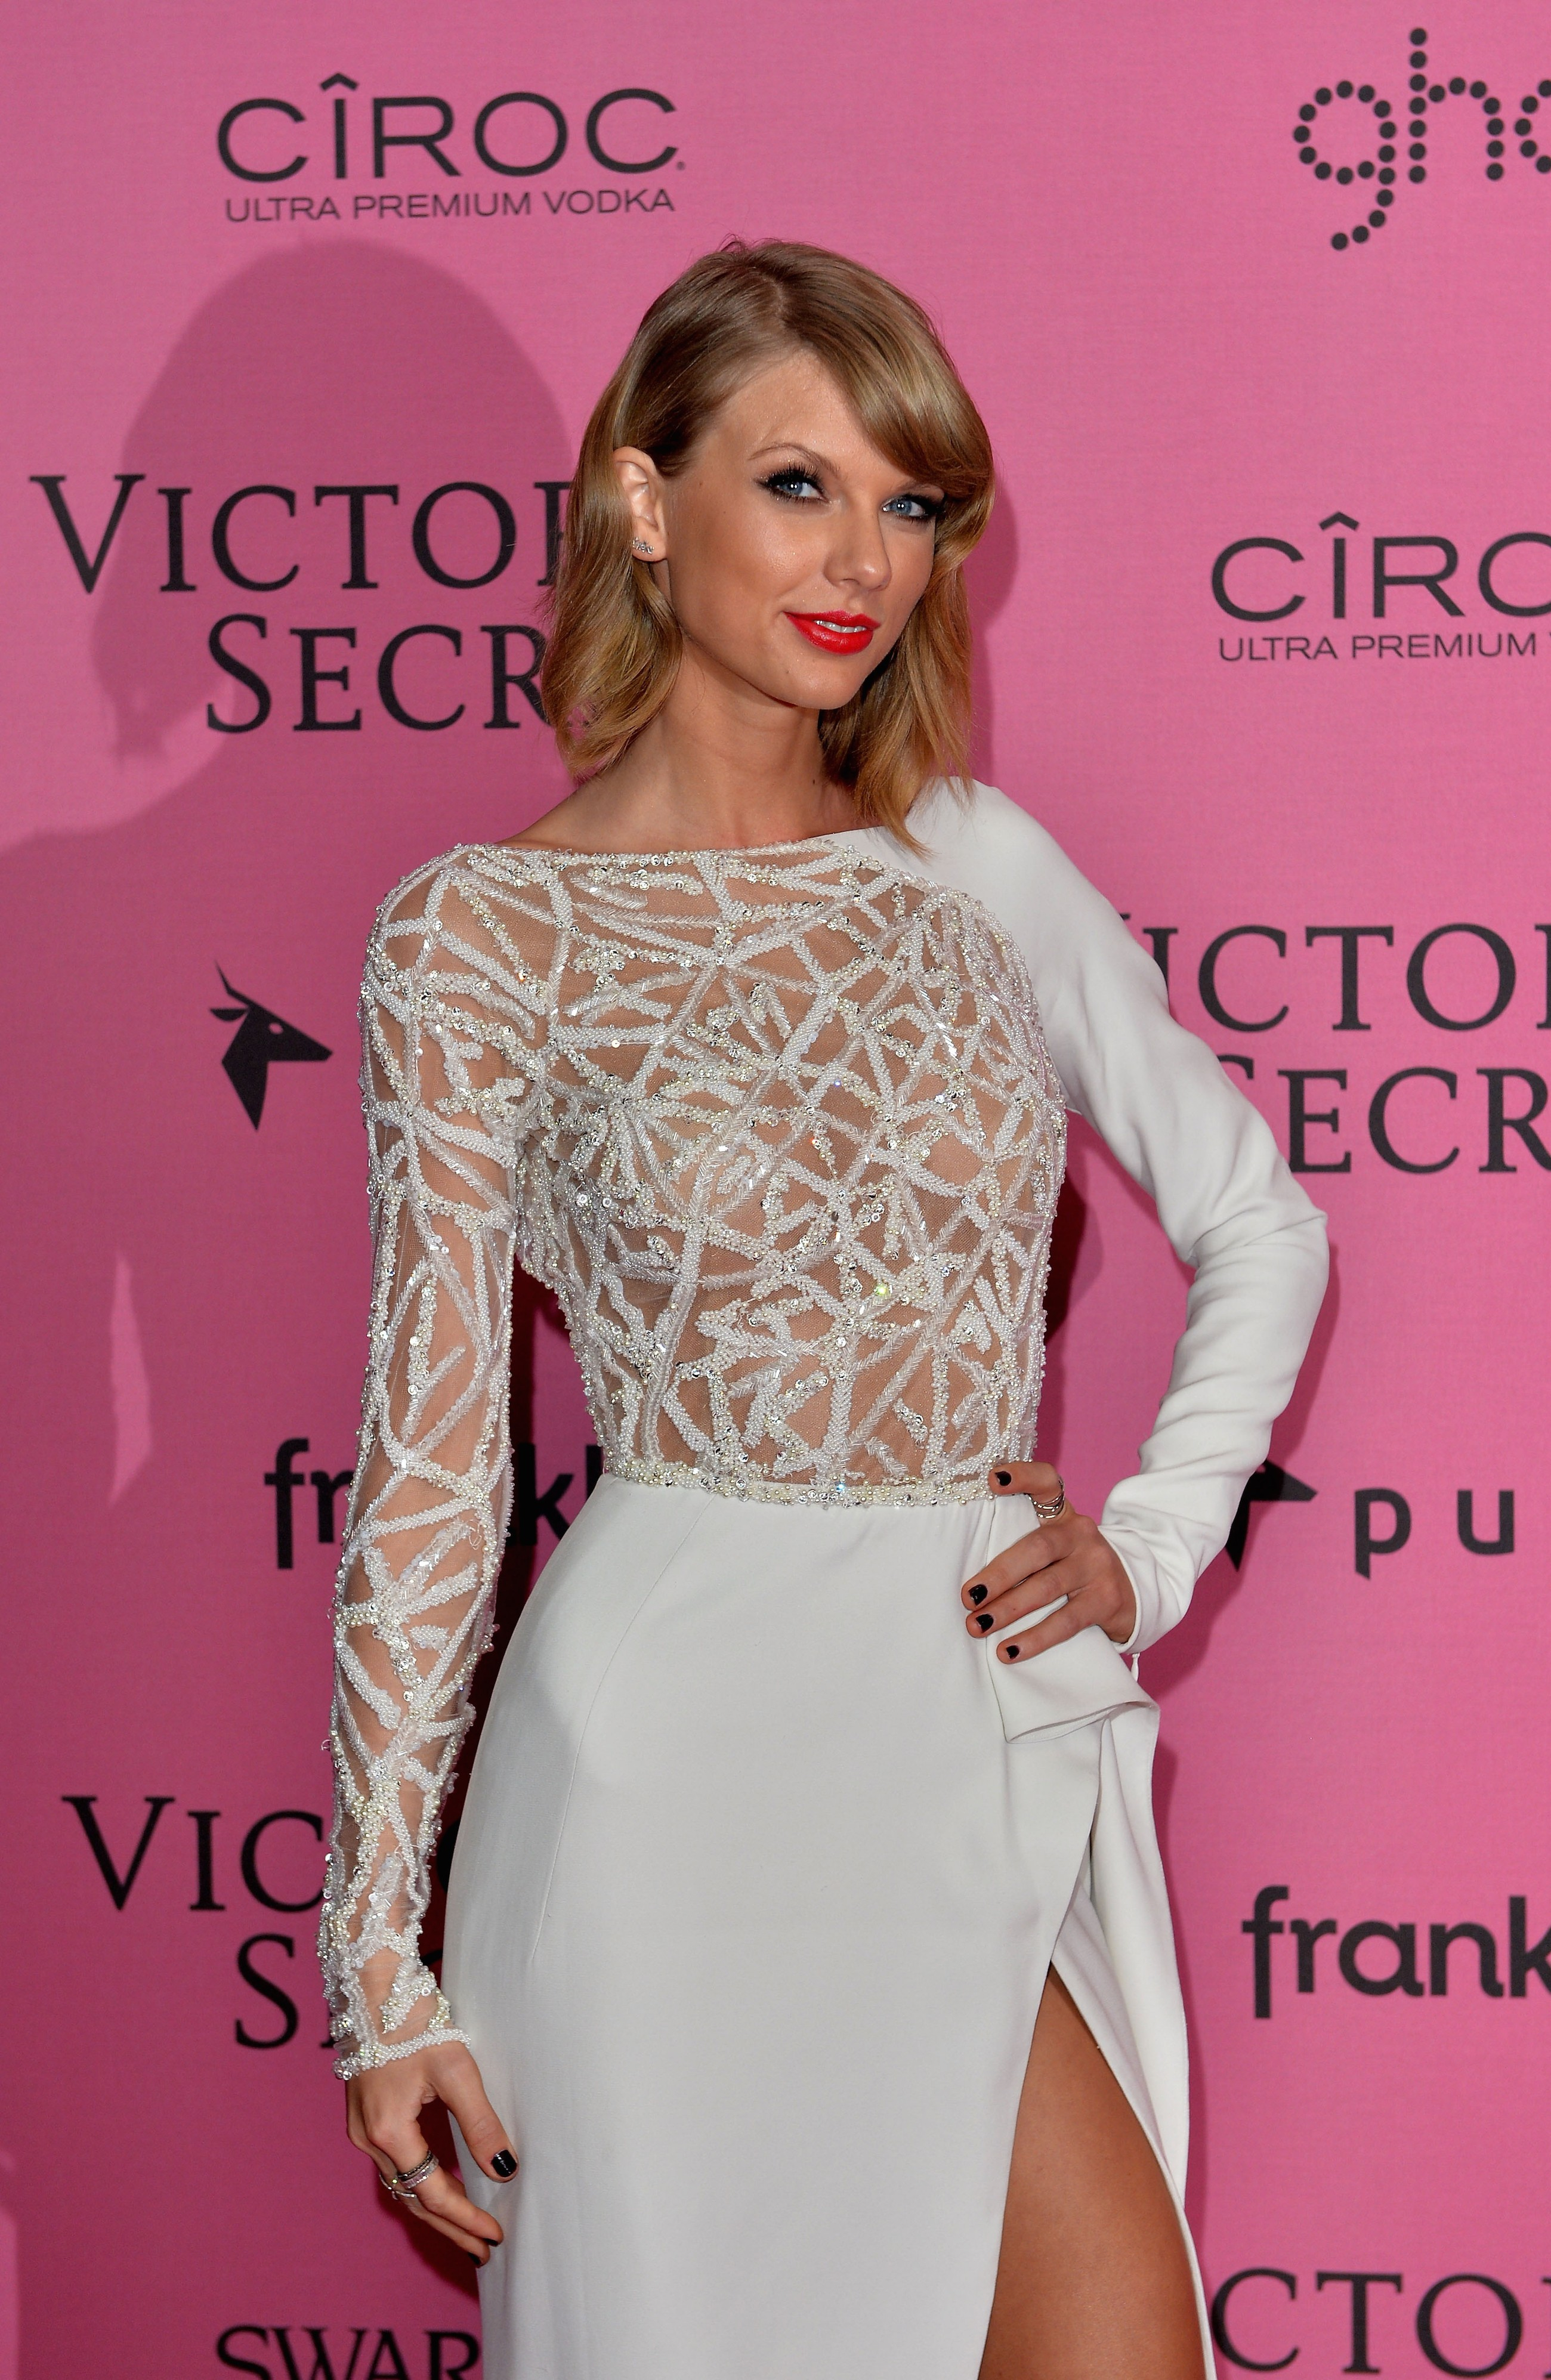 Taylor Swift Nude - Page 3 Pictures, Naked, Oops, Topless, Bikini, Video, Nipple-3503